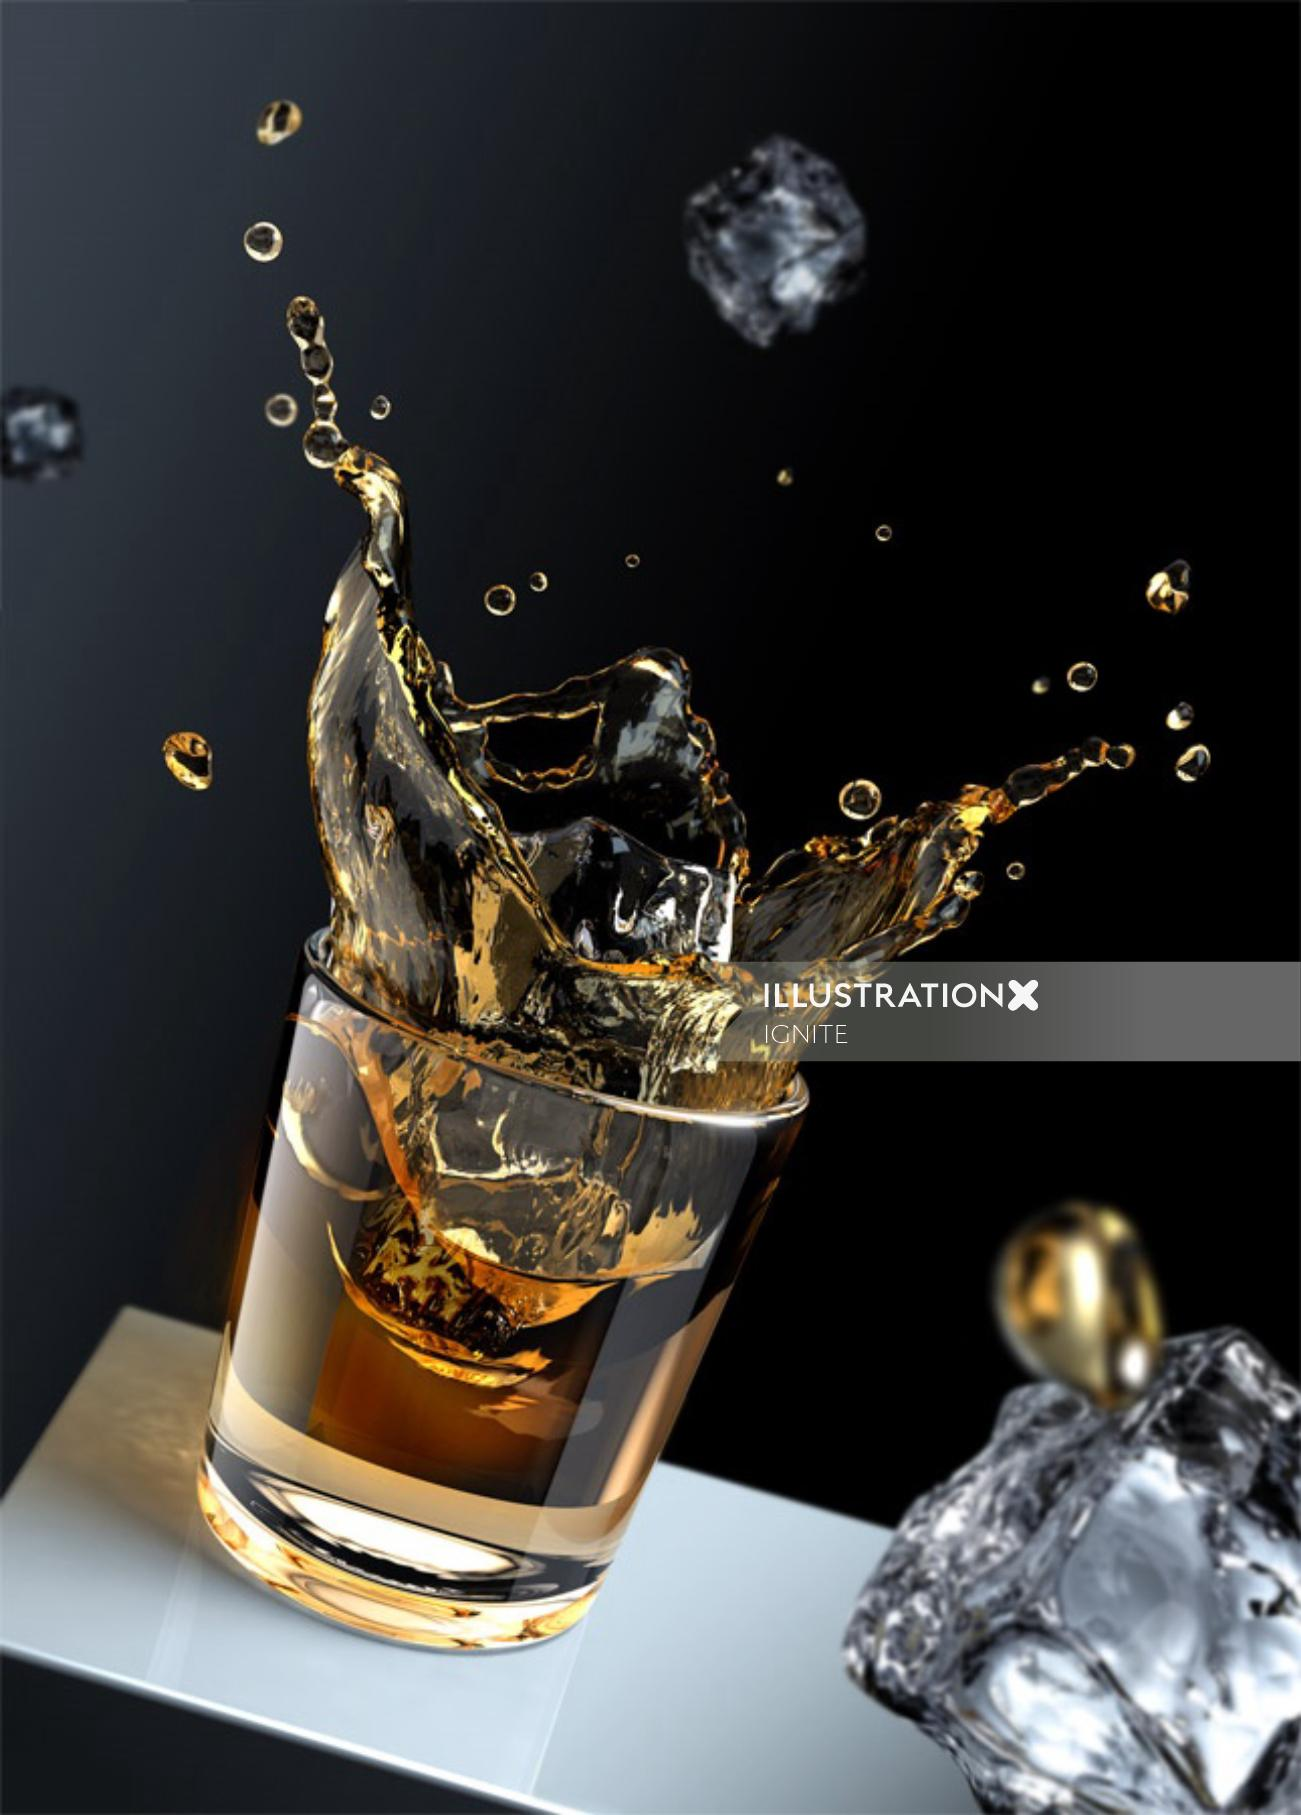 Photorealistic illustration of splash